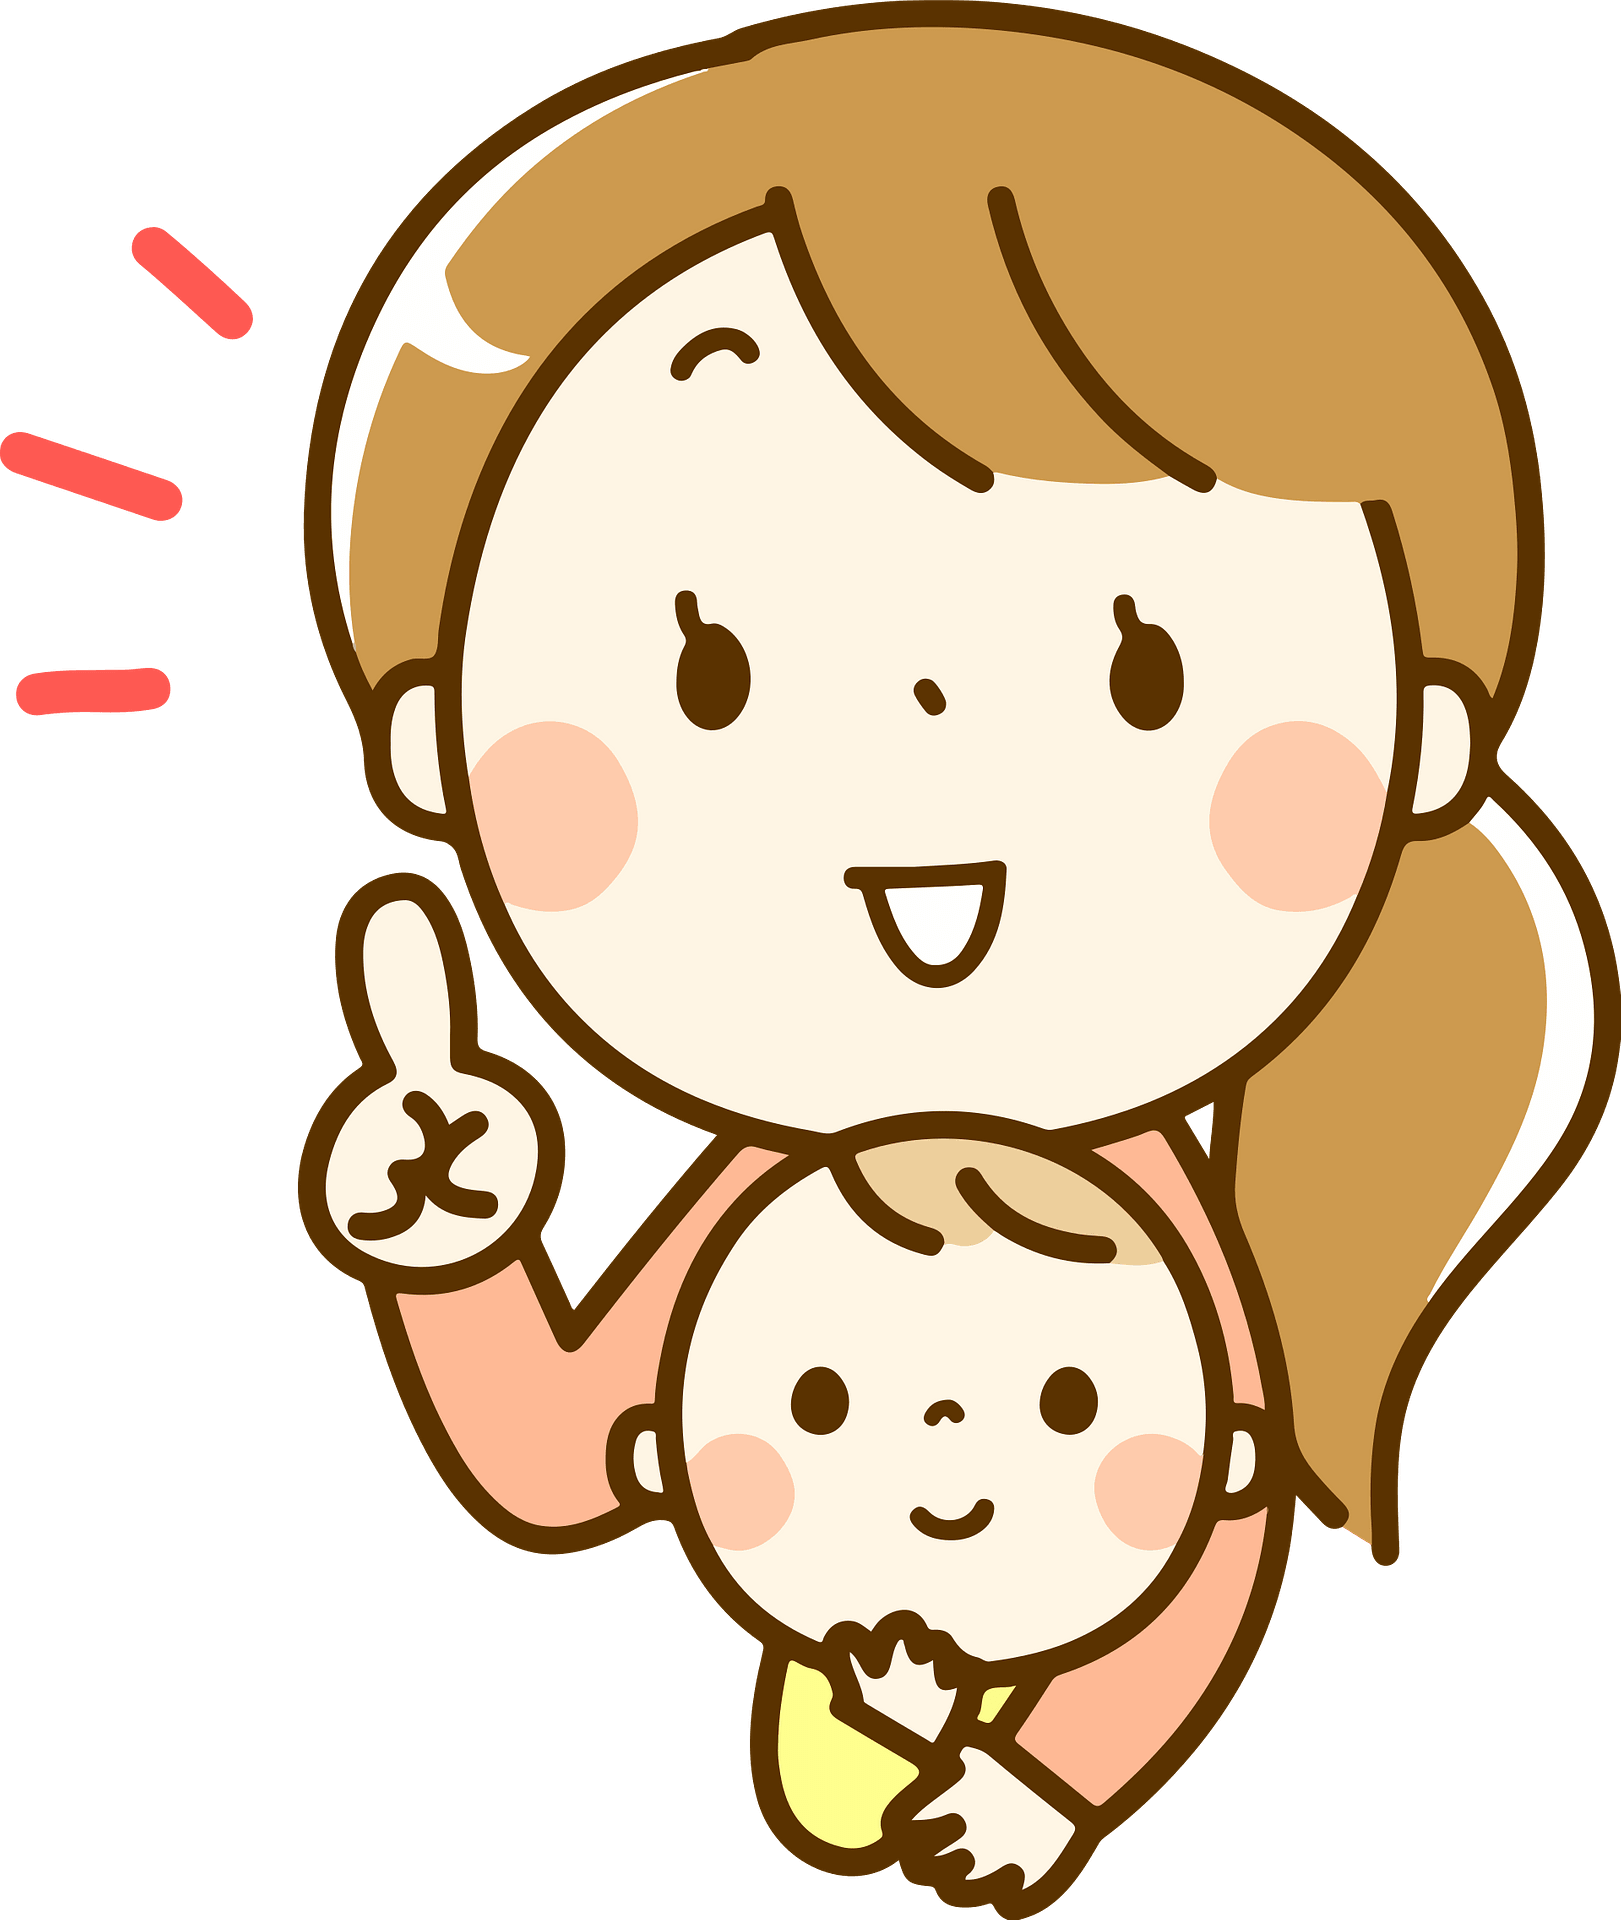 Rachel Mother Is Holding Baby And Giving Advice Clipart Free Download Transparent Png Creazilla